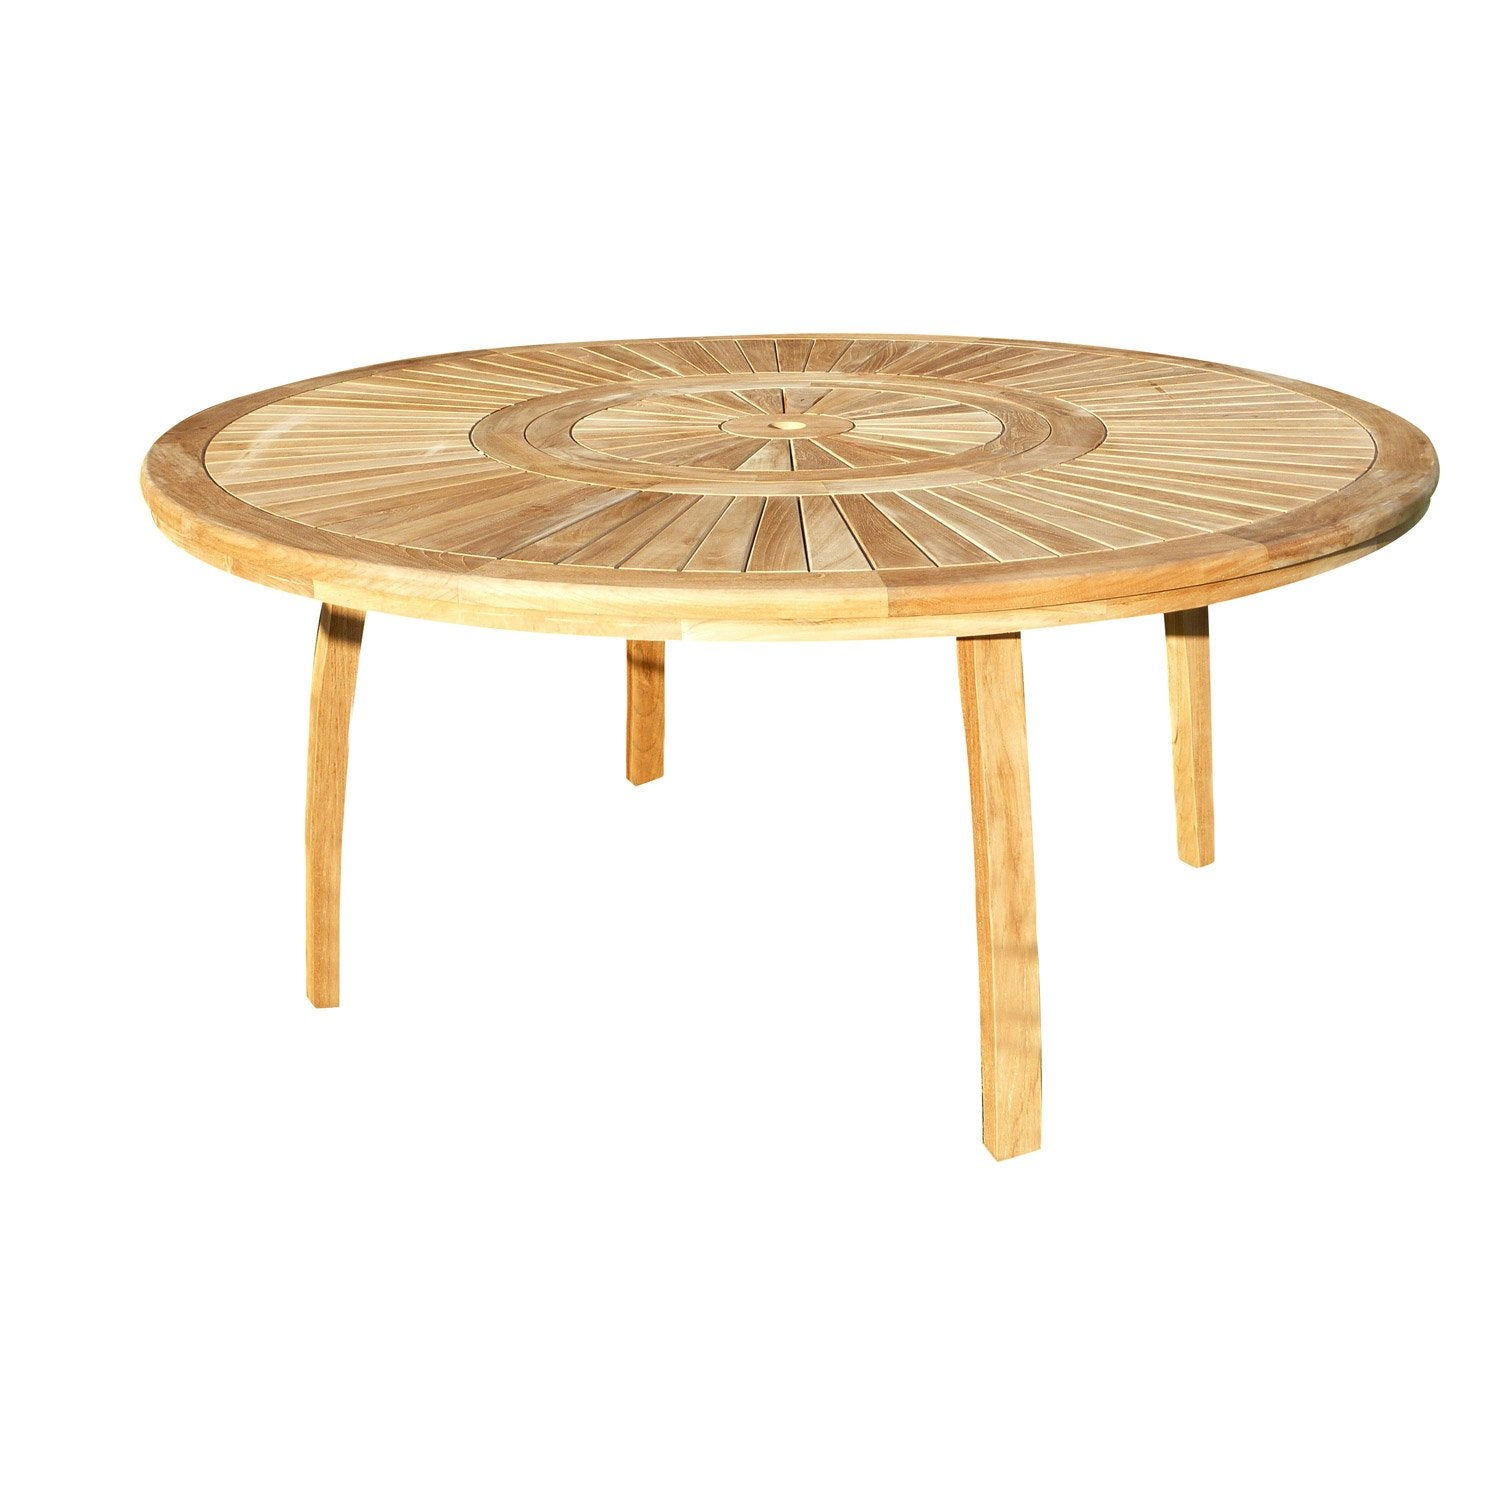 Table de jardin orion ronde naturel 8 personnes leroy merlin - Salon de jardin table ronde ...